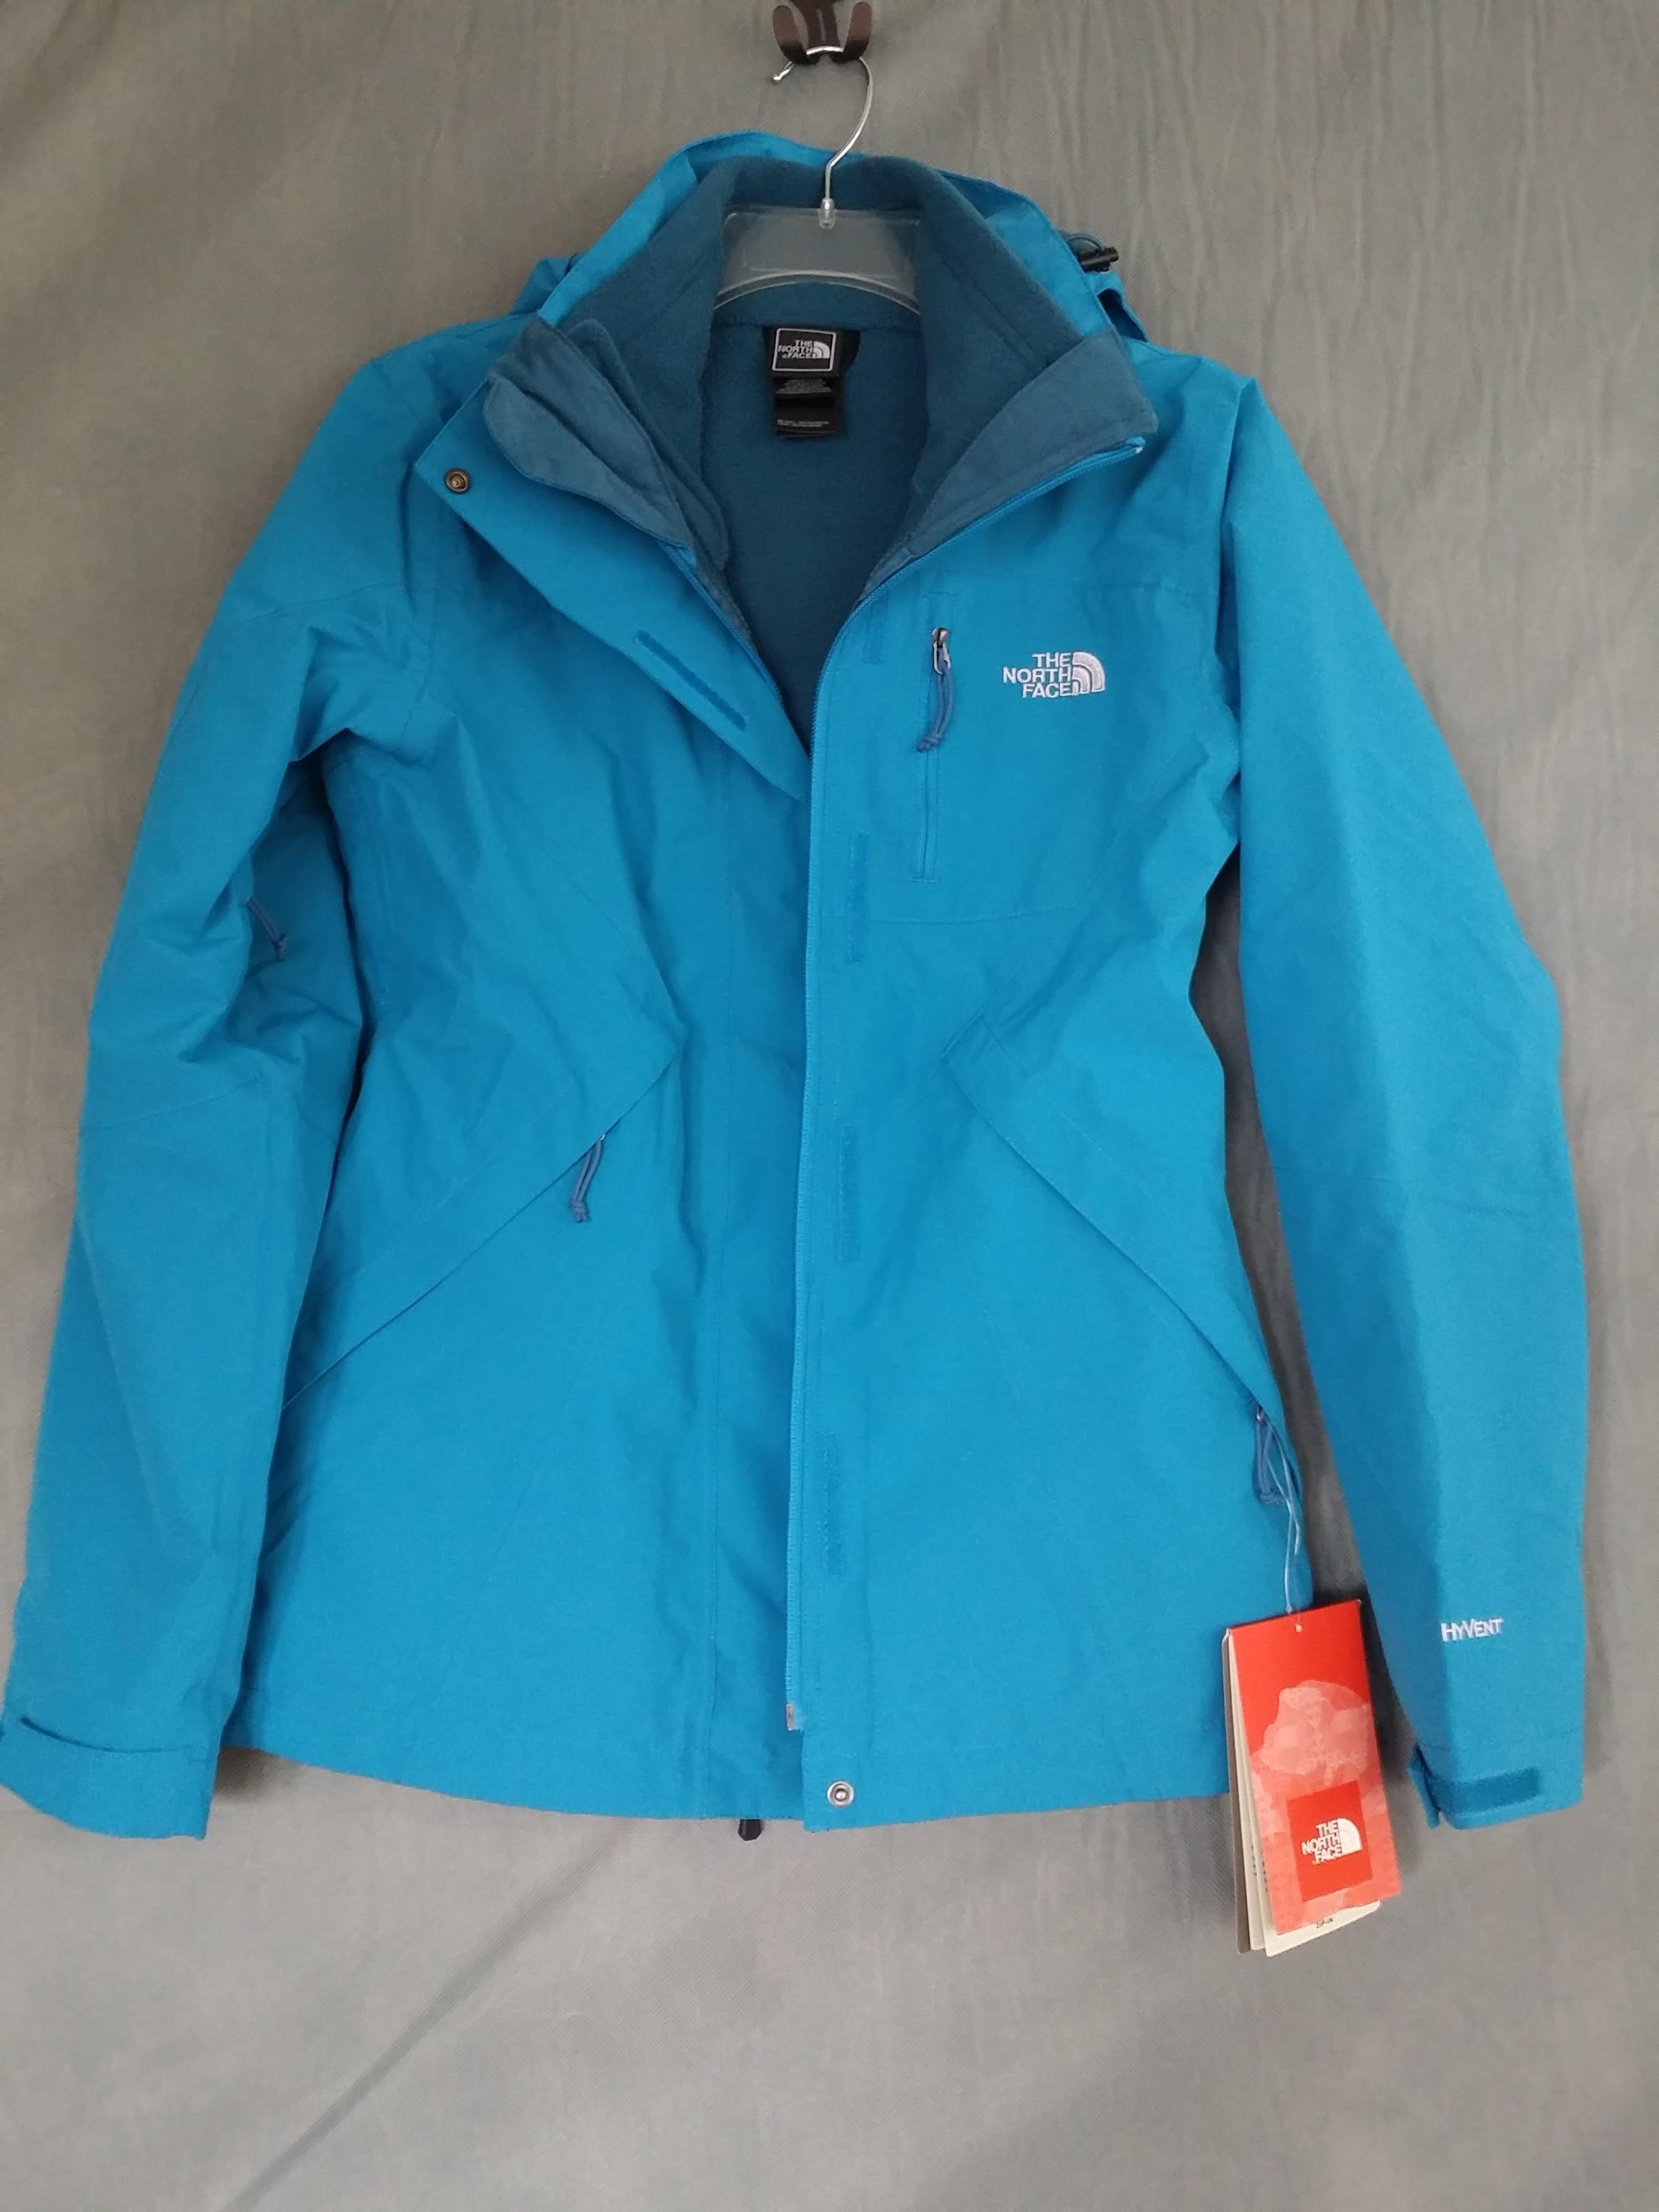 c5a3fb60cd3 germany the north face adele triclimate 3 in 1 jacket womens ...